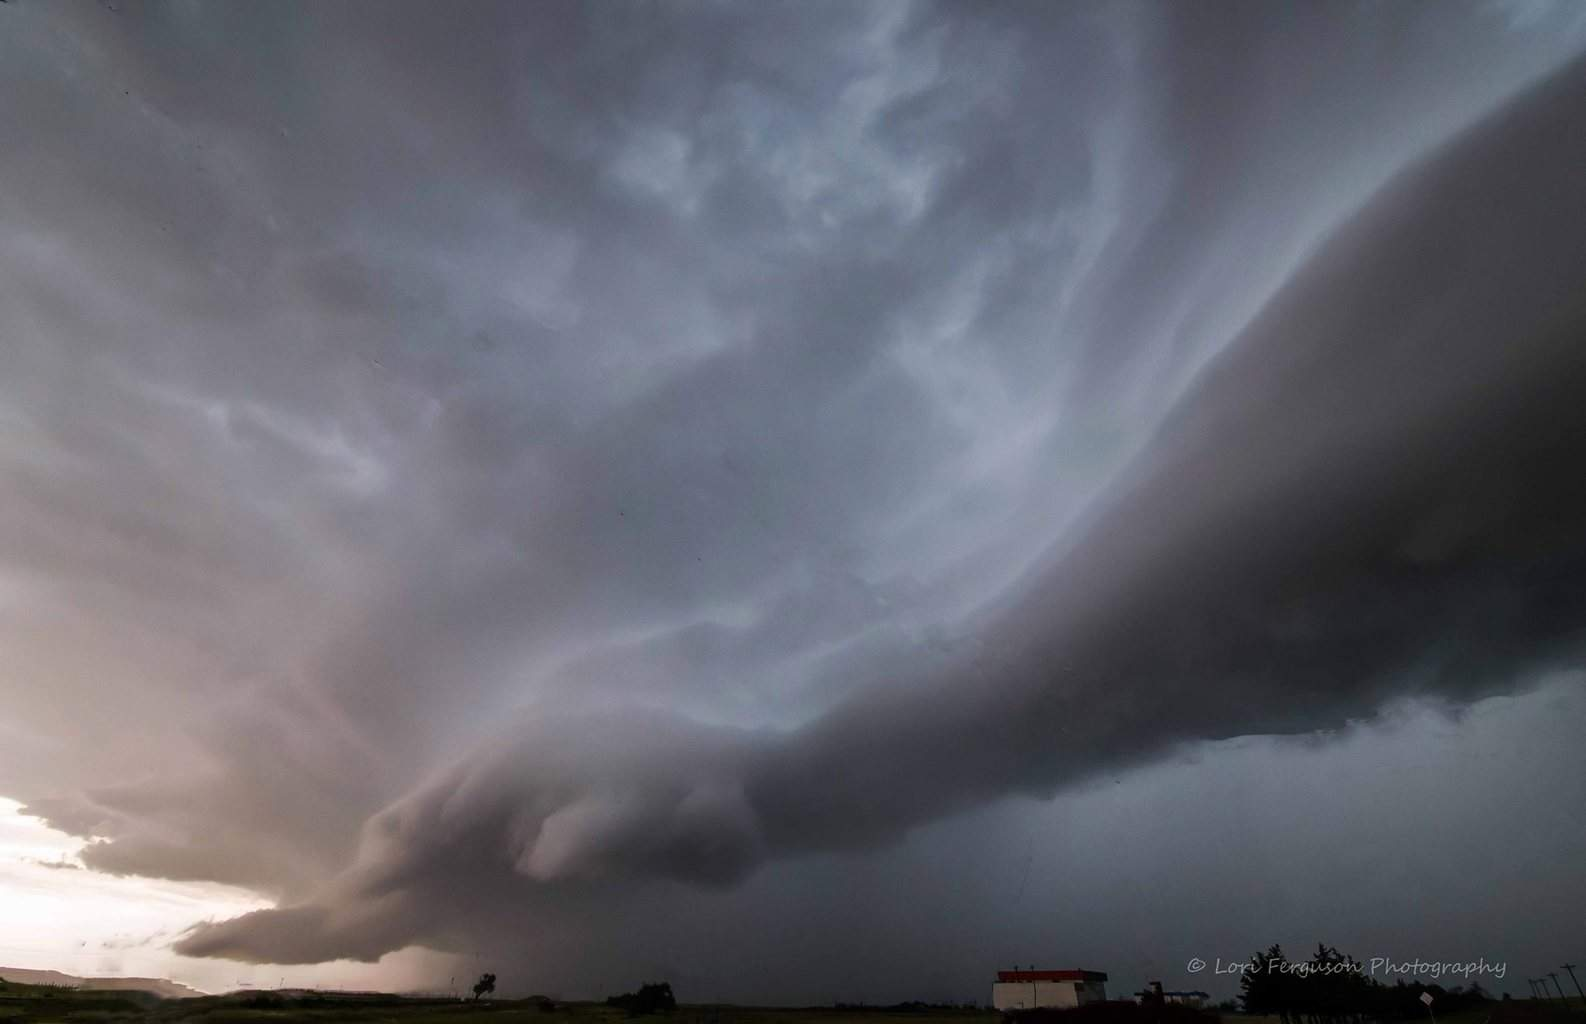 Giant hand from above! Taken on May 30, 2014 somewhere near Byers, CO.